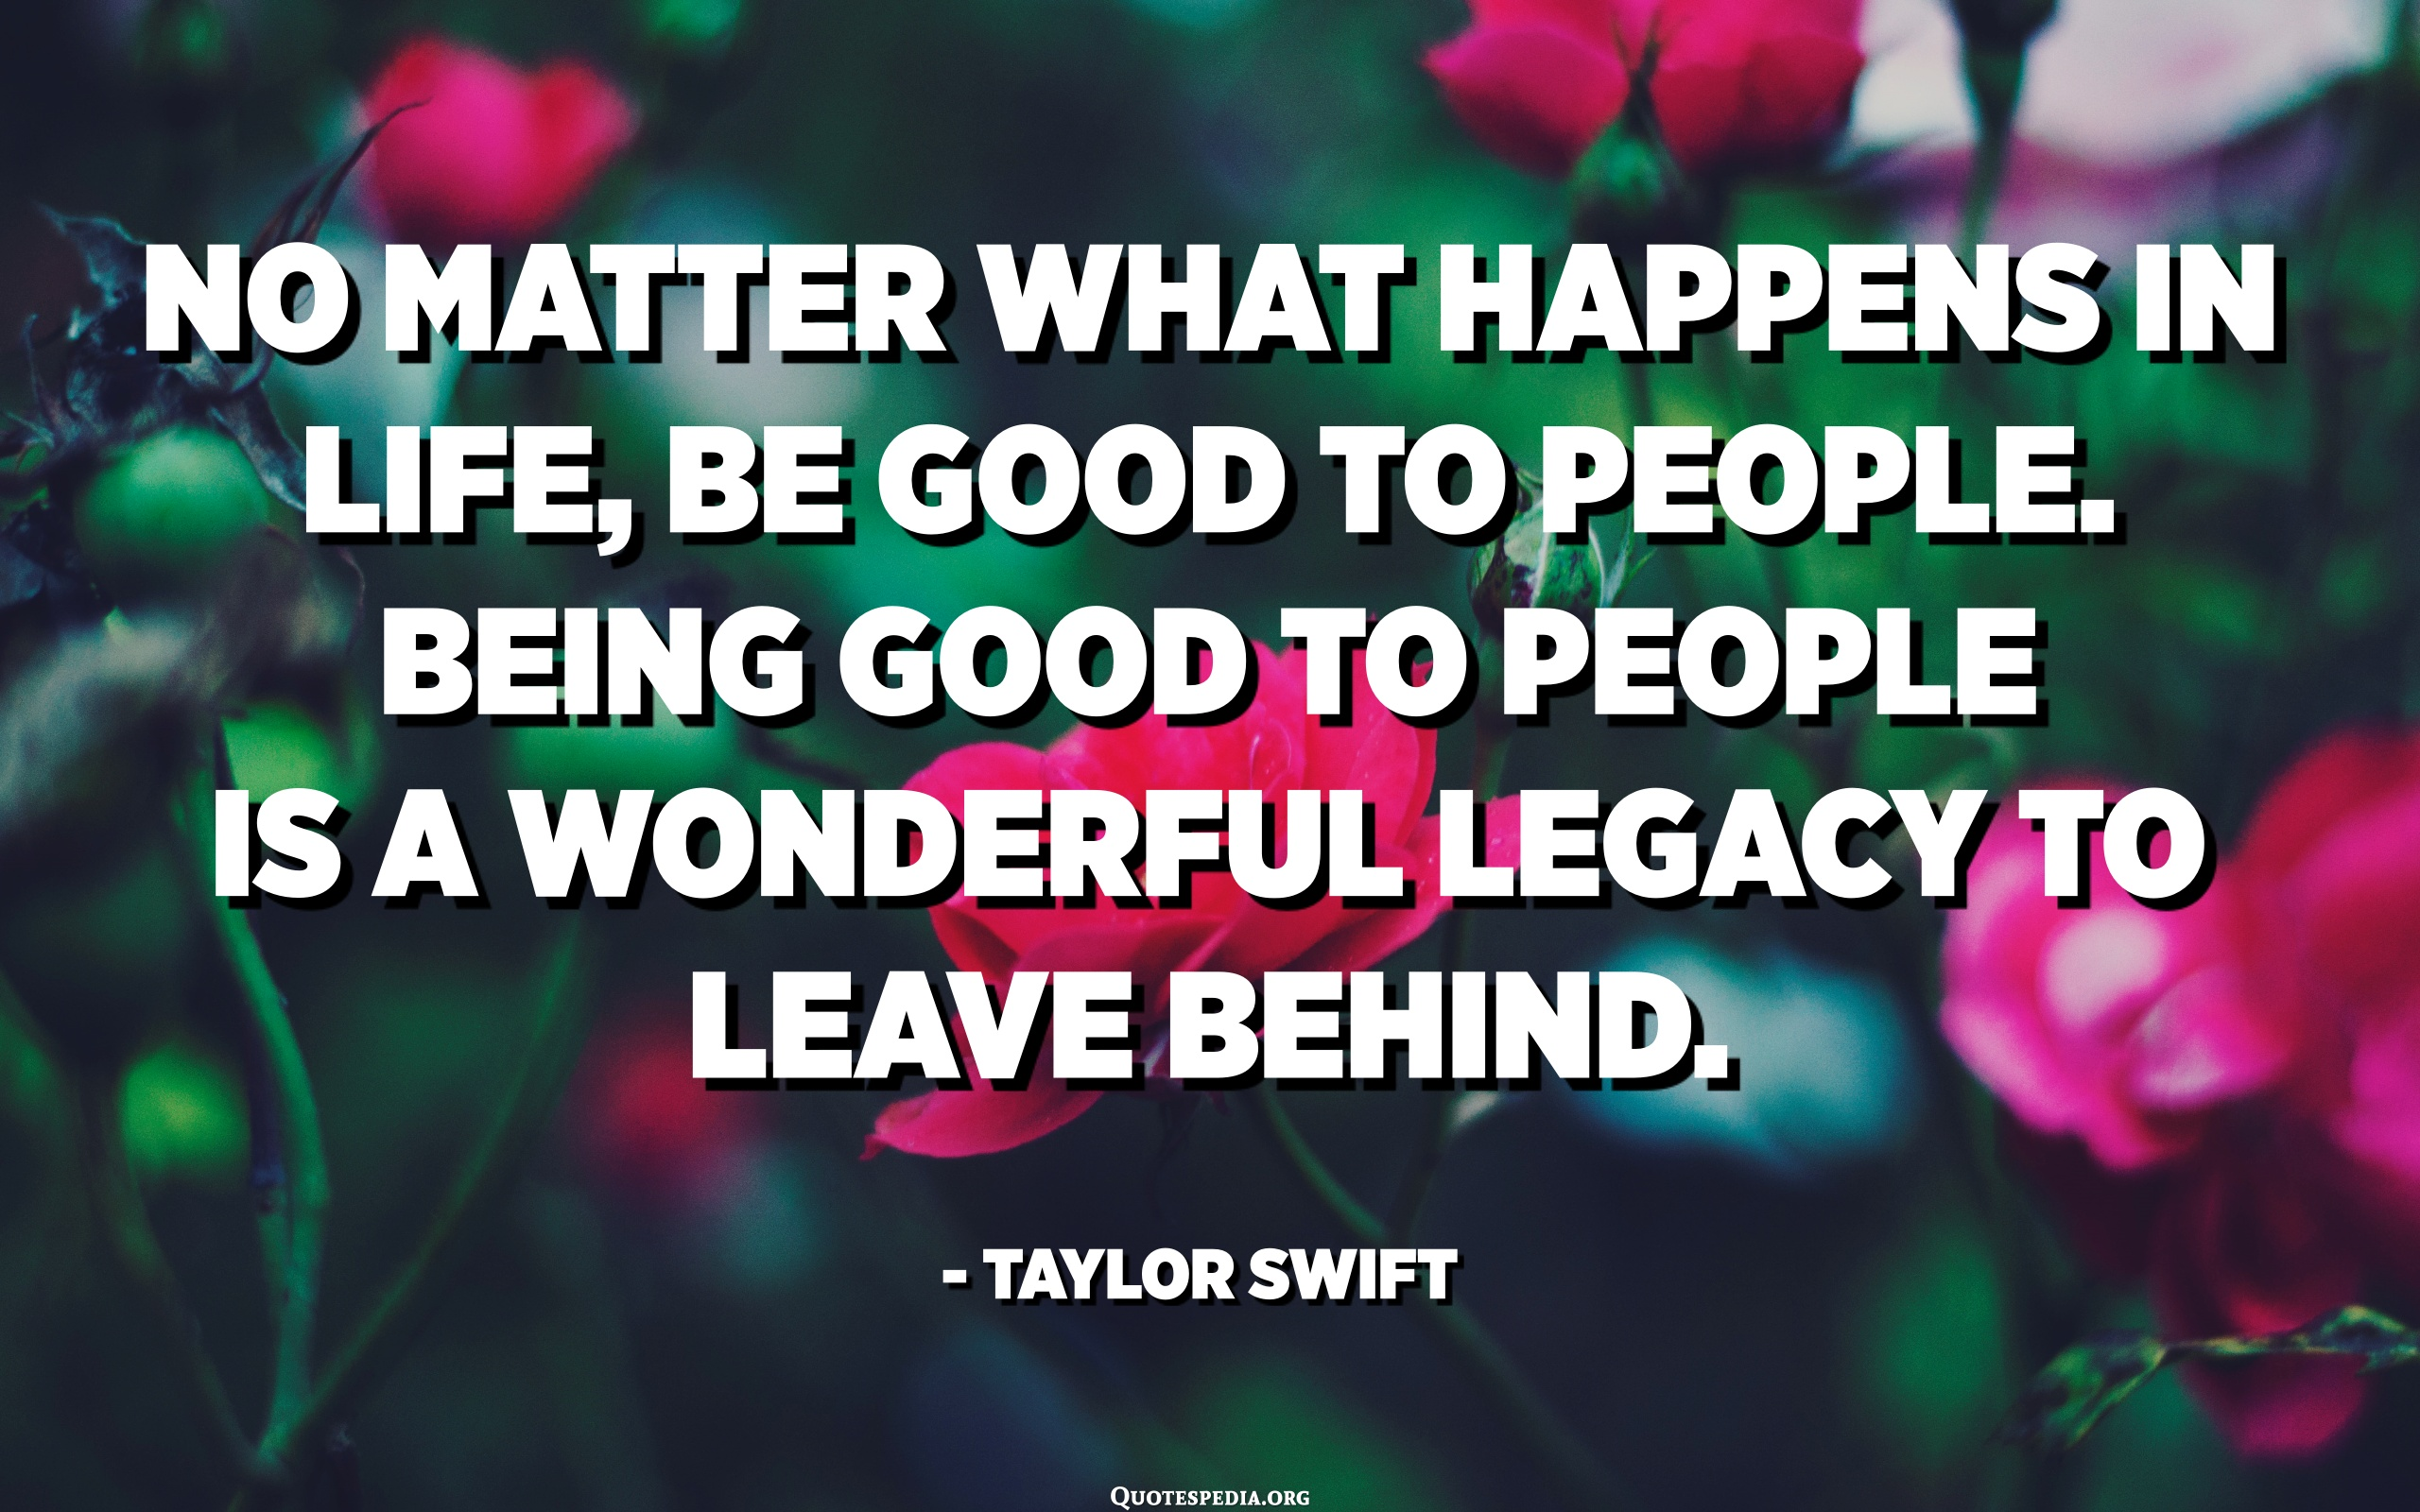 No Matter What Happens In Life Be Good To People Being Good To People Is A Wonderful Legacy To Leave Behind Taylor Swift Quotes Pedia